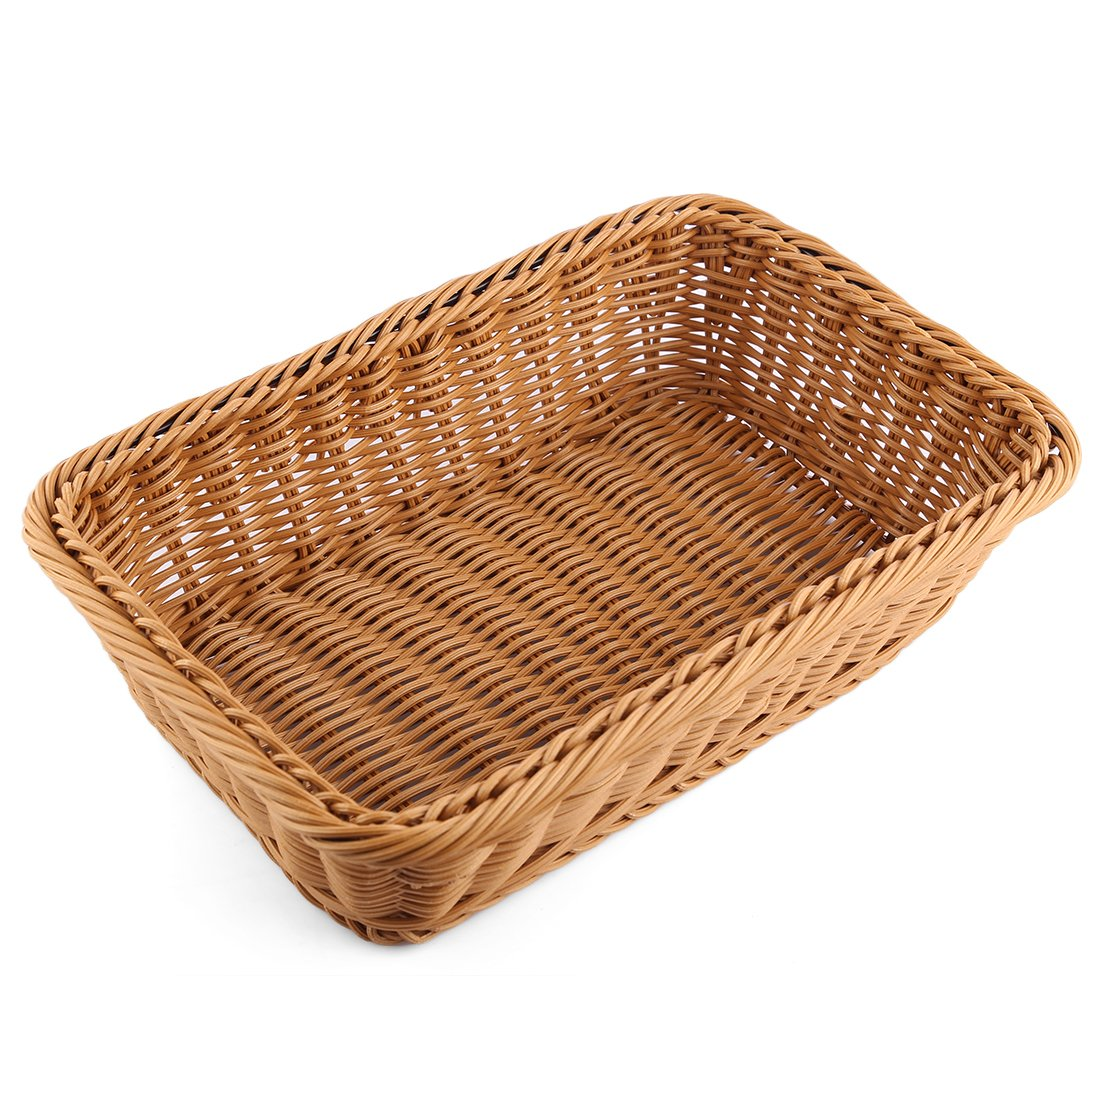 Bread Basket, Yamix Rectangle Imitation Rattan Bread Basket ,Food Serving Baskets,Restaurant Serving/Diplay Baskets For Fruit Food Vegetables - Dark Brown